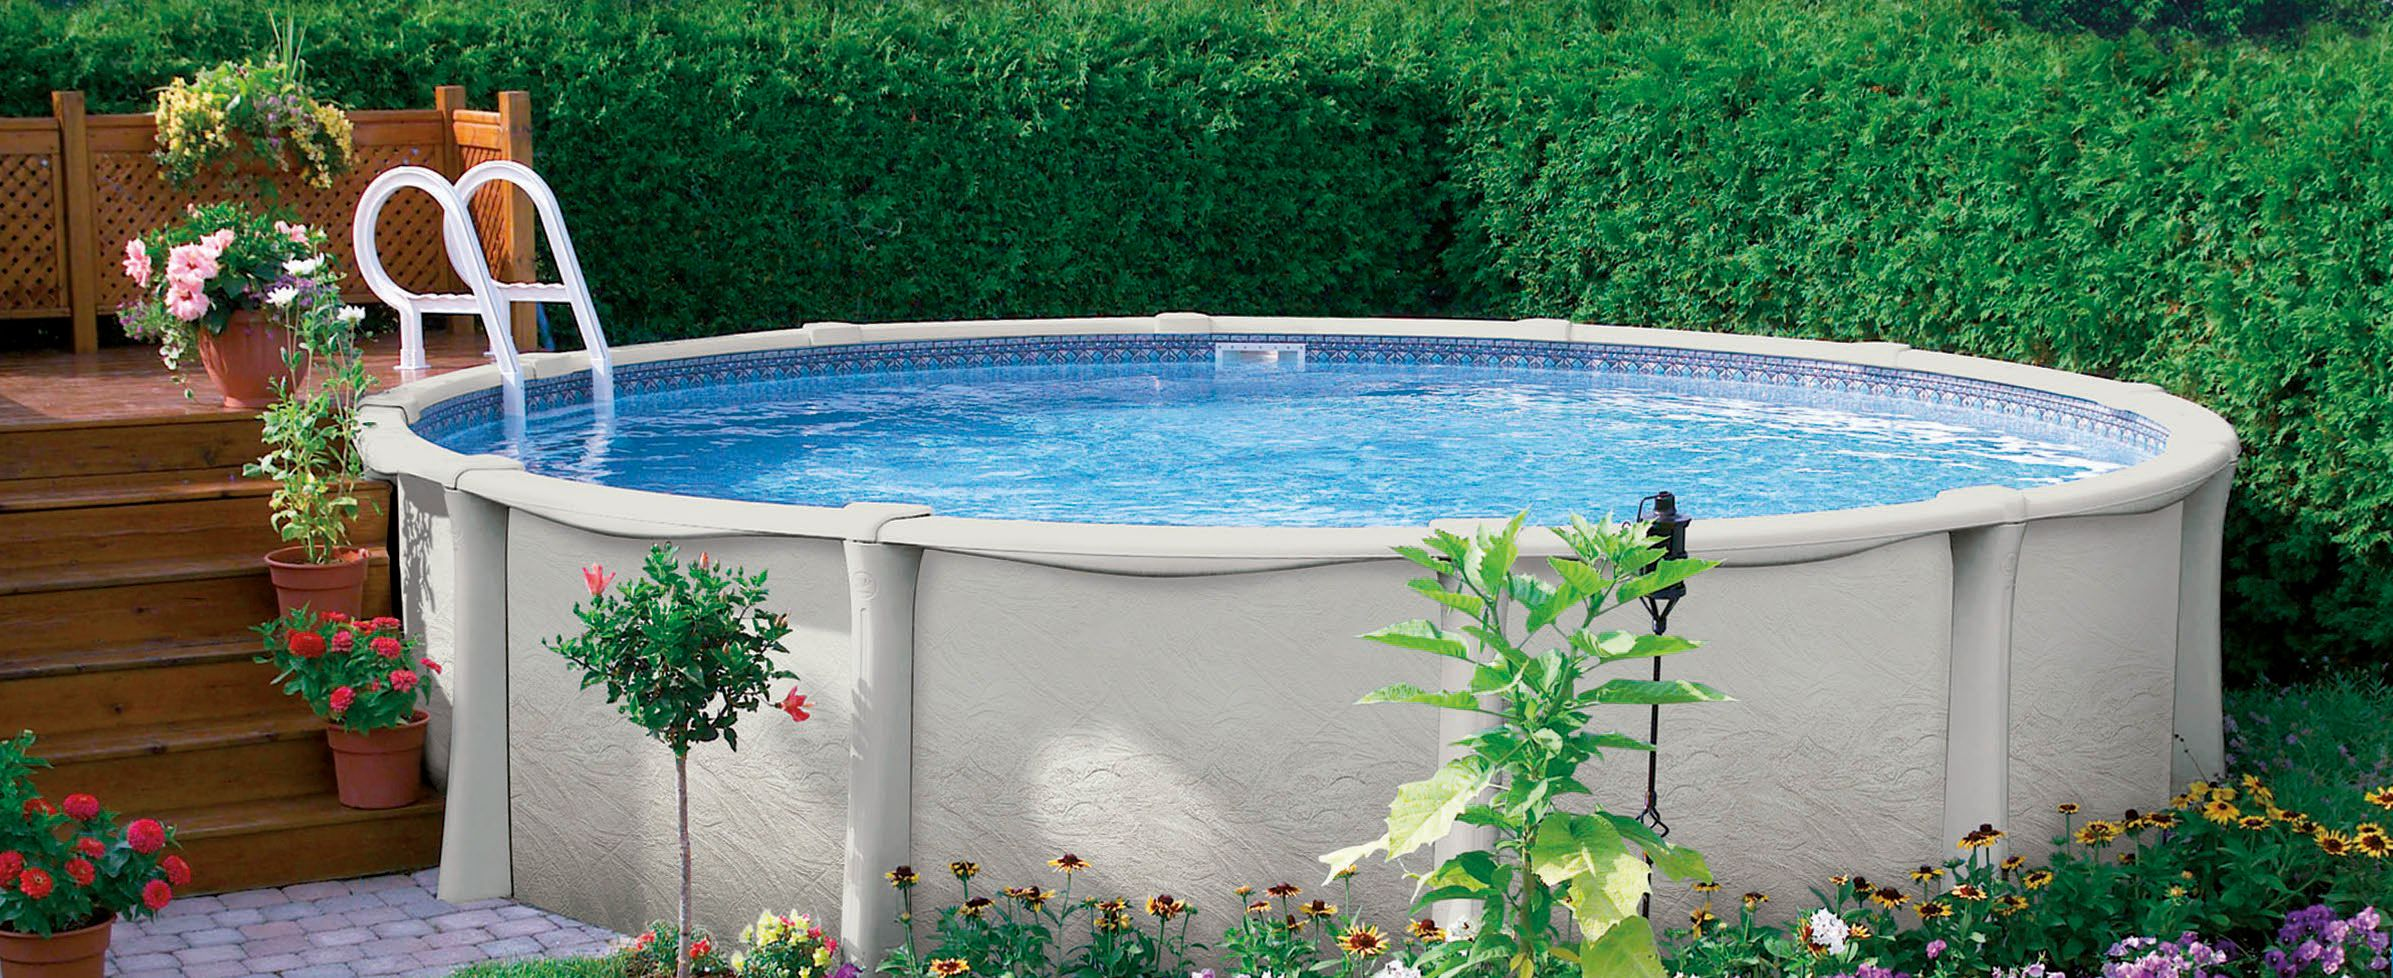 Piscine hors sol piscine for Piscine hors sol 4mx3m